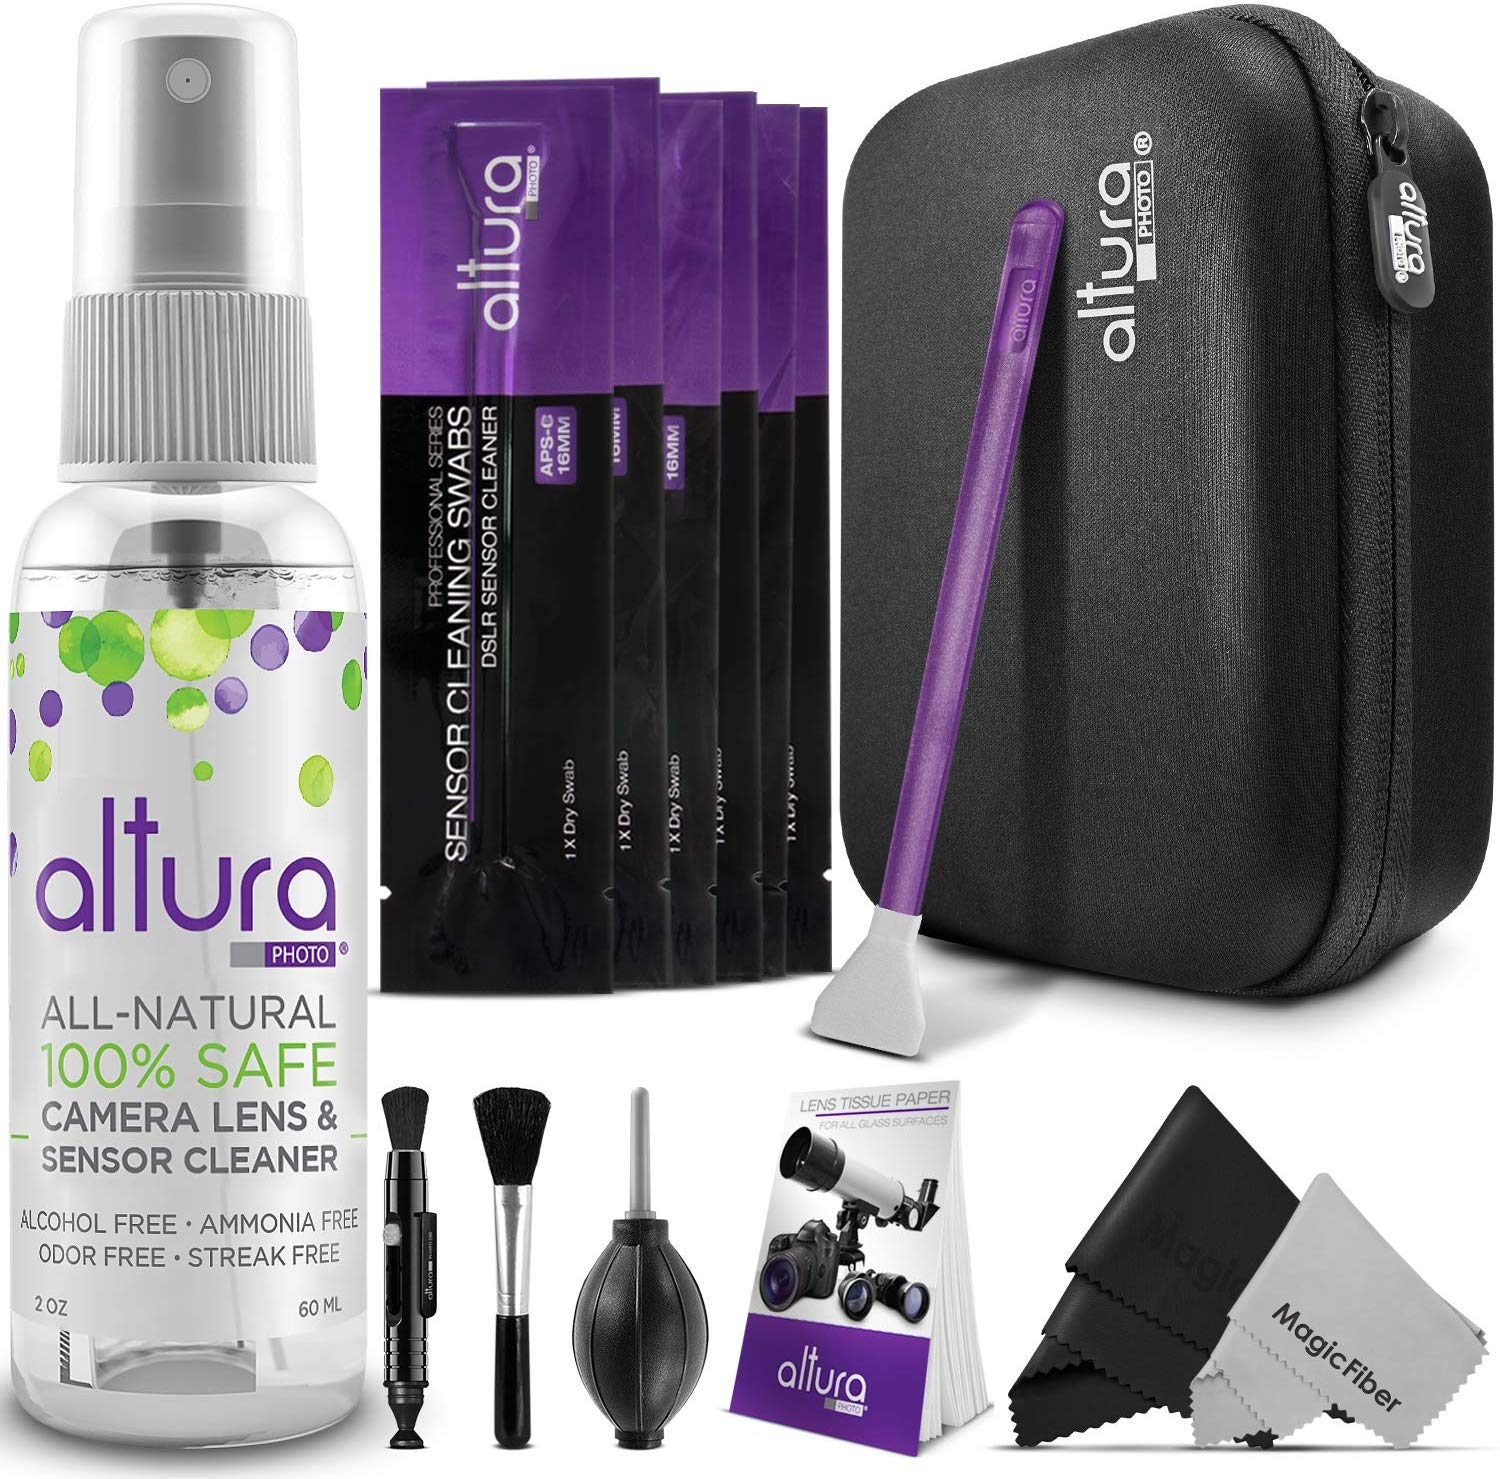 Professional Camera Cleaning Kit - Best Gifts for Photographers